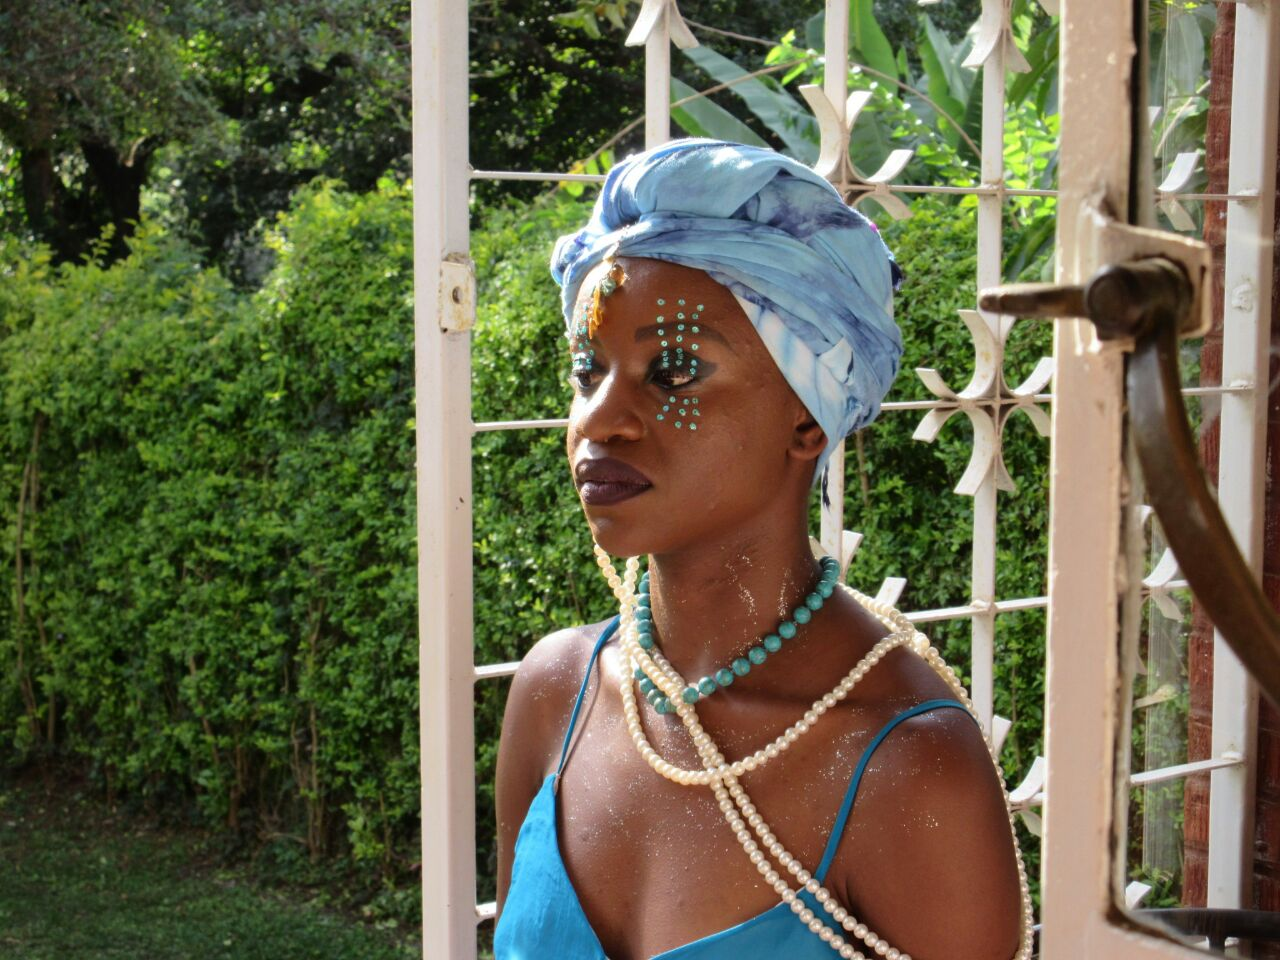 Look 2: Make-up for the early stages of Yemaya's rising